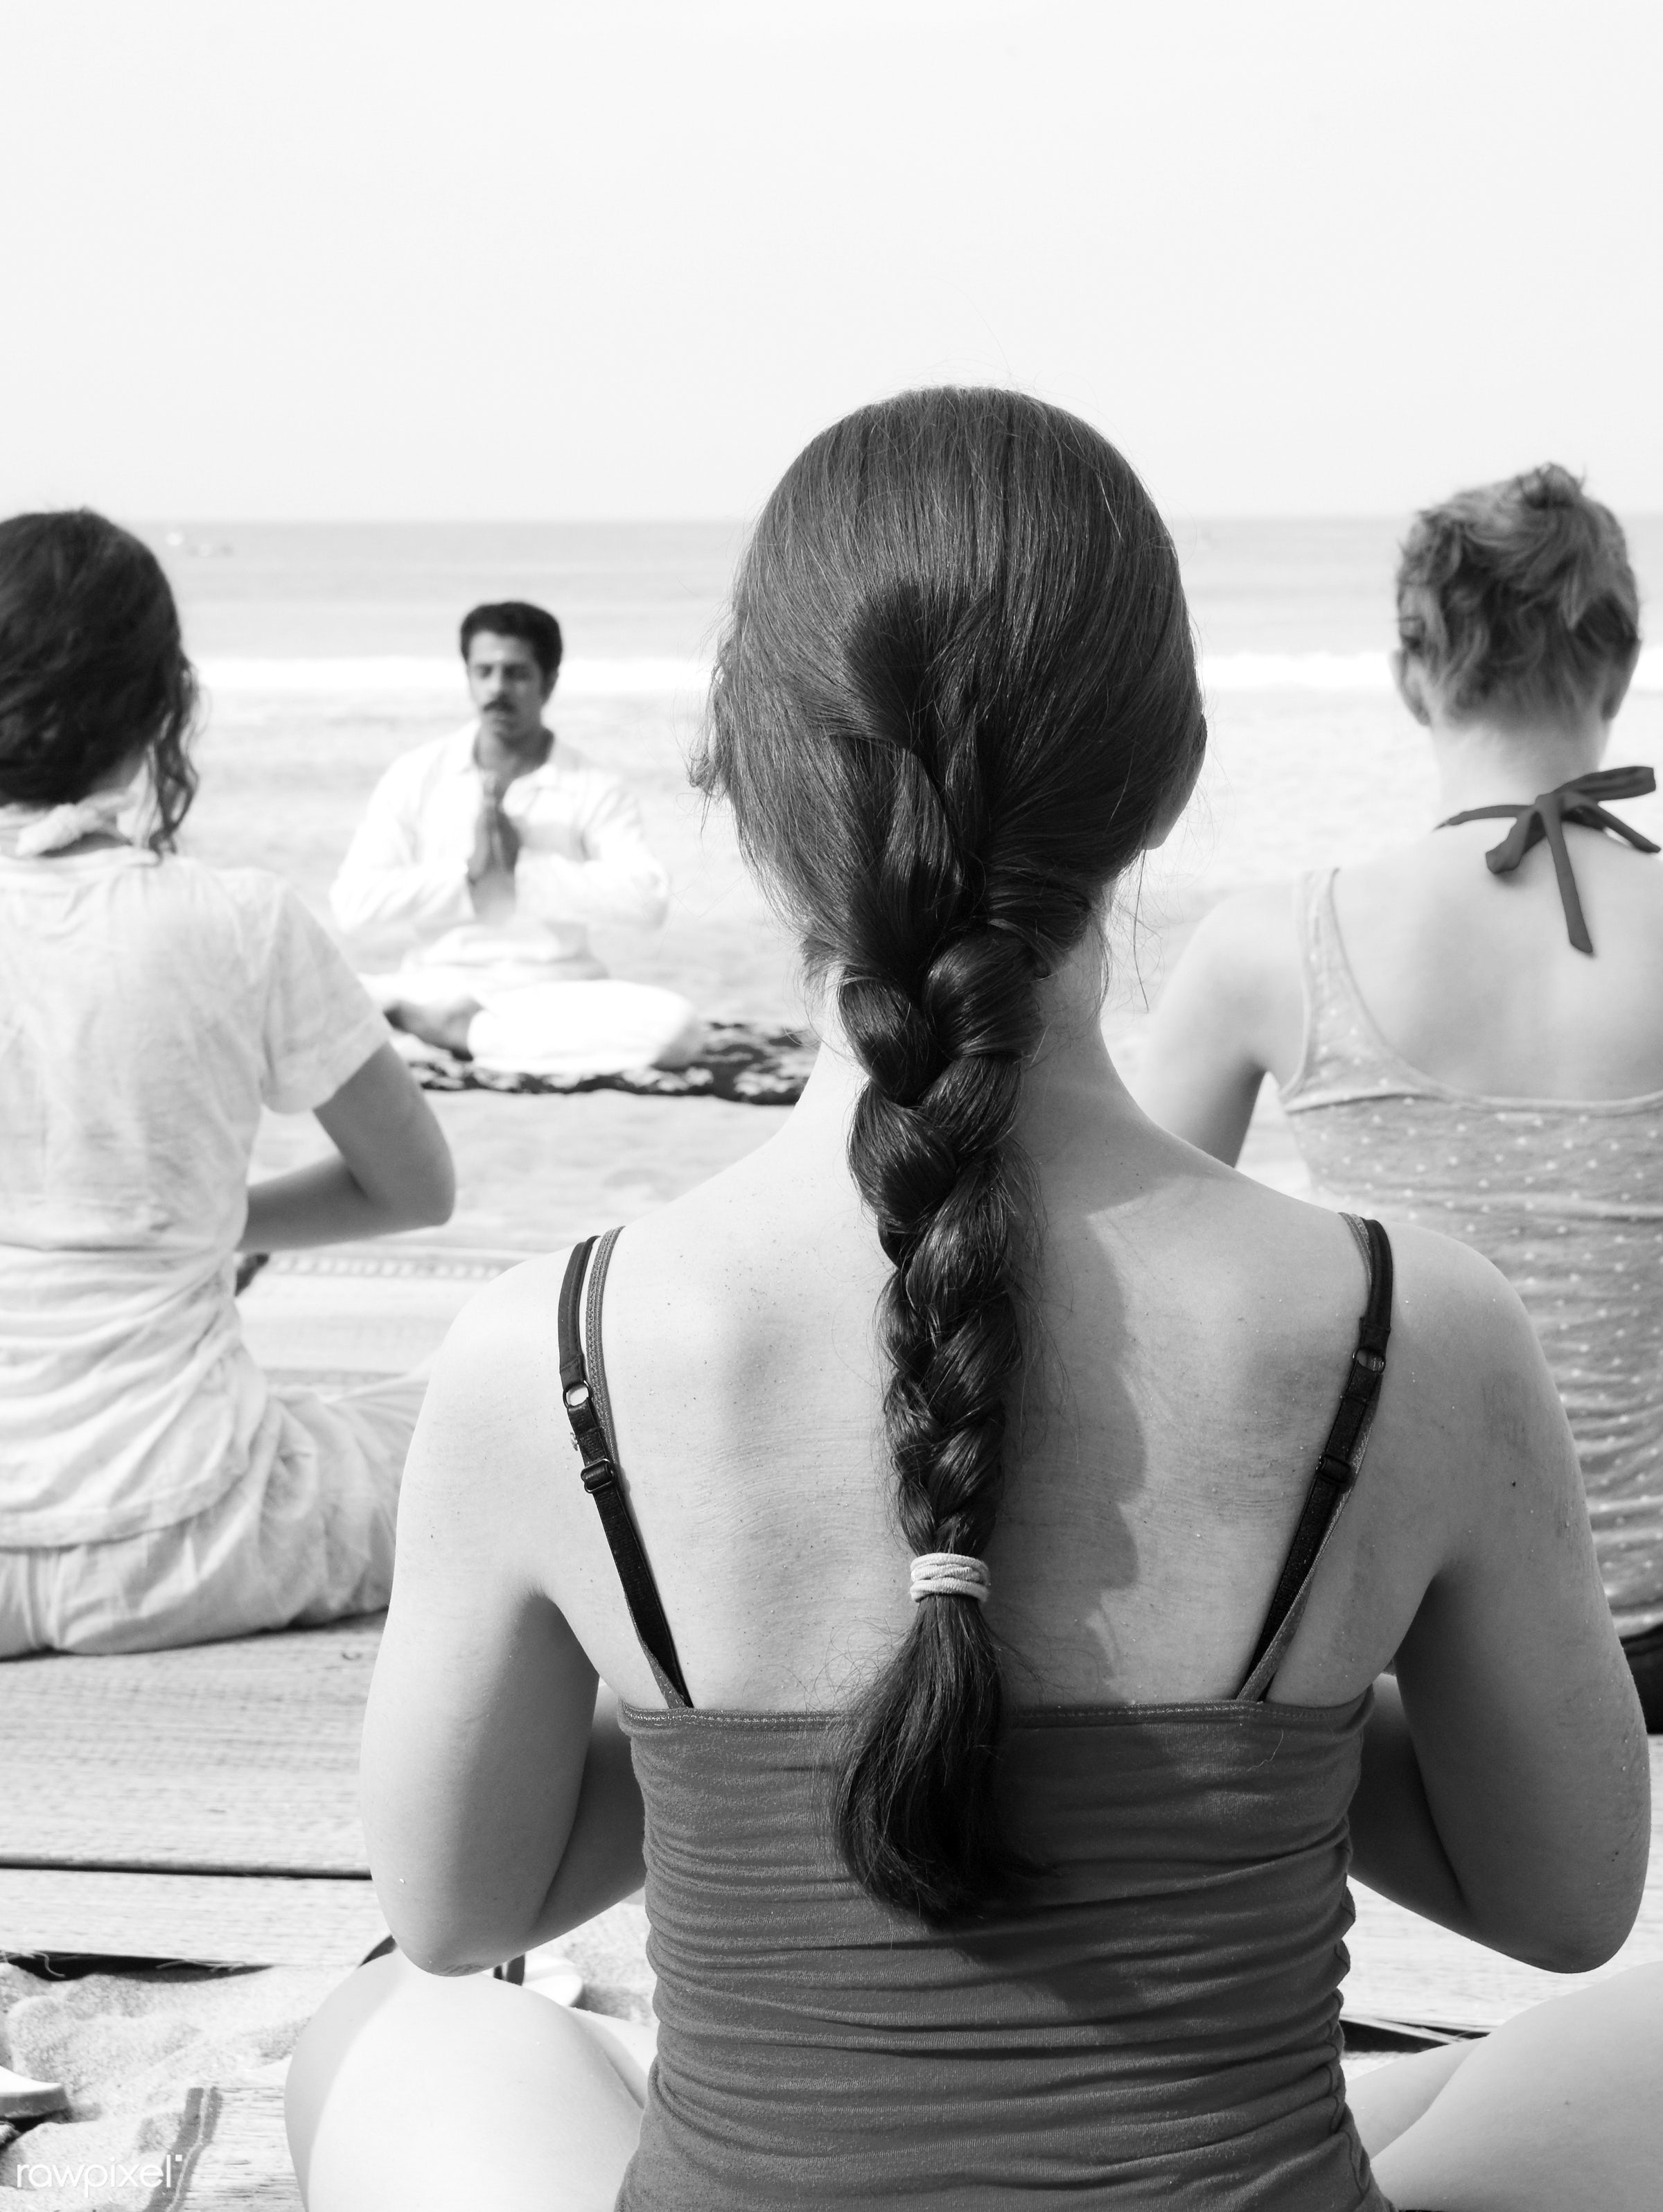 Yoga instructor and his students by the beach. - activity, adult, beach, beauty in nature, body, body care, casual, class,...